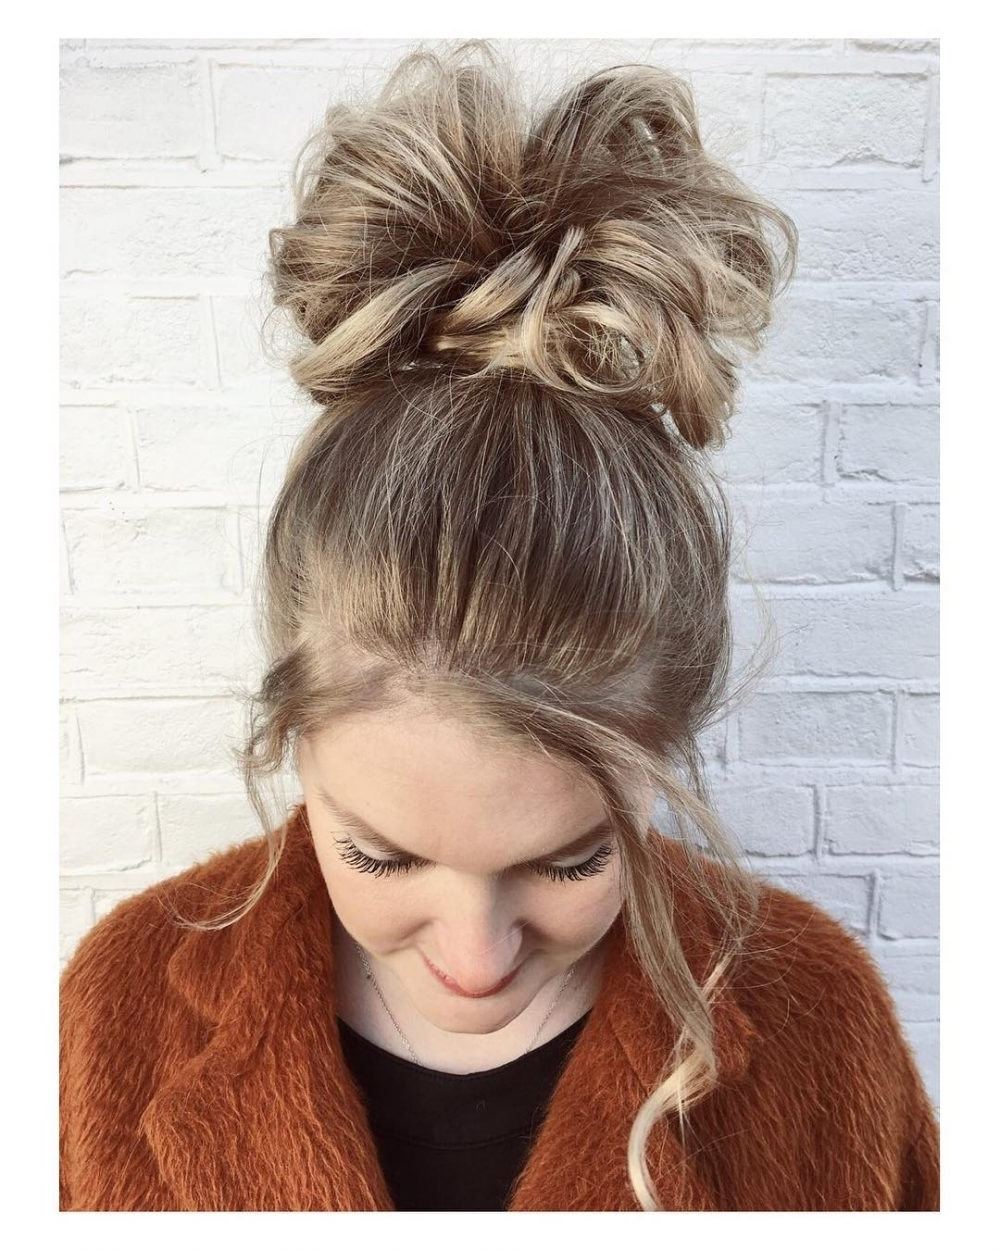 34 Easy Updos For Long Hair Trending For 2018 Within Long Hair Updo Hairstyles For Work (View 5 of 15)